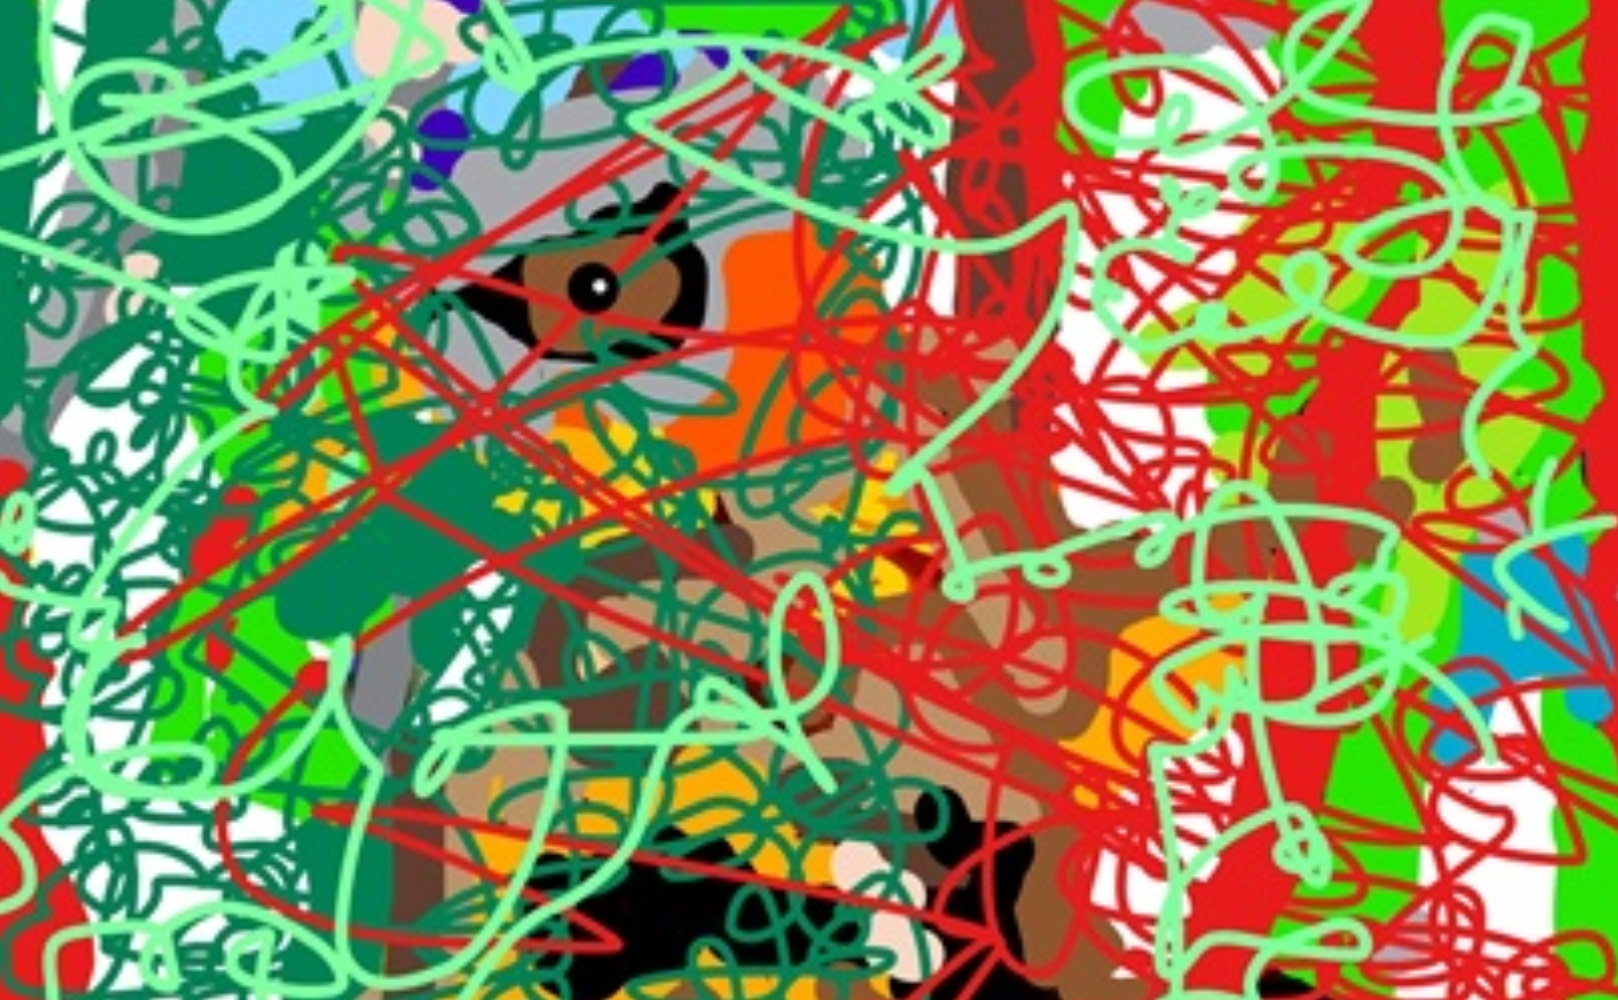 an eye in an abstract jungle